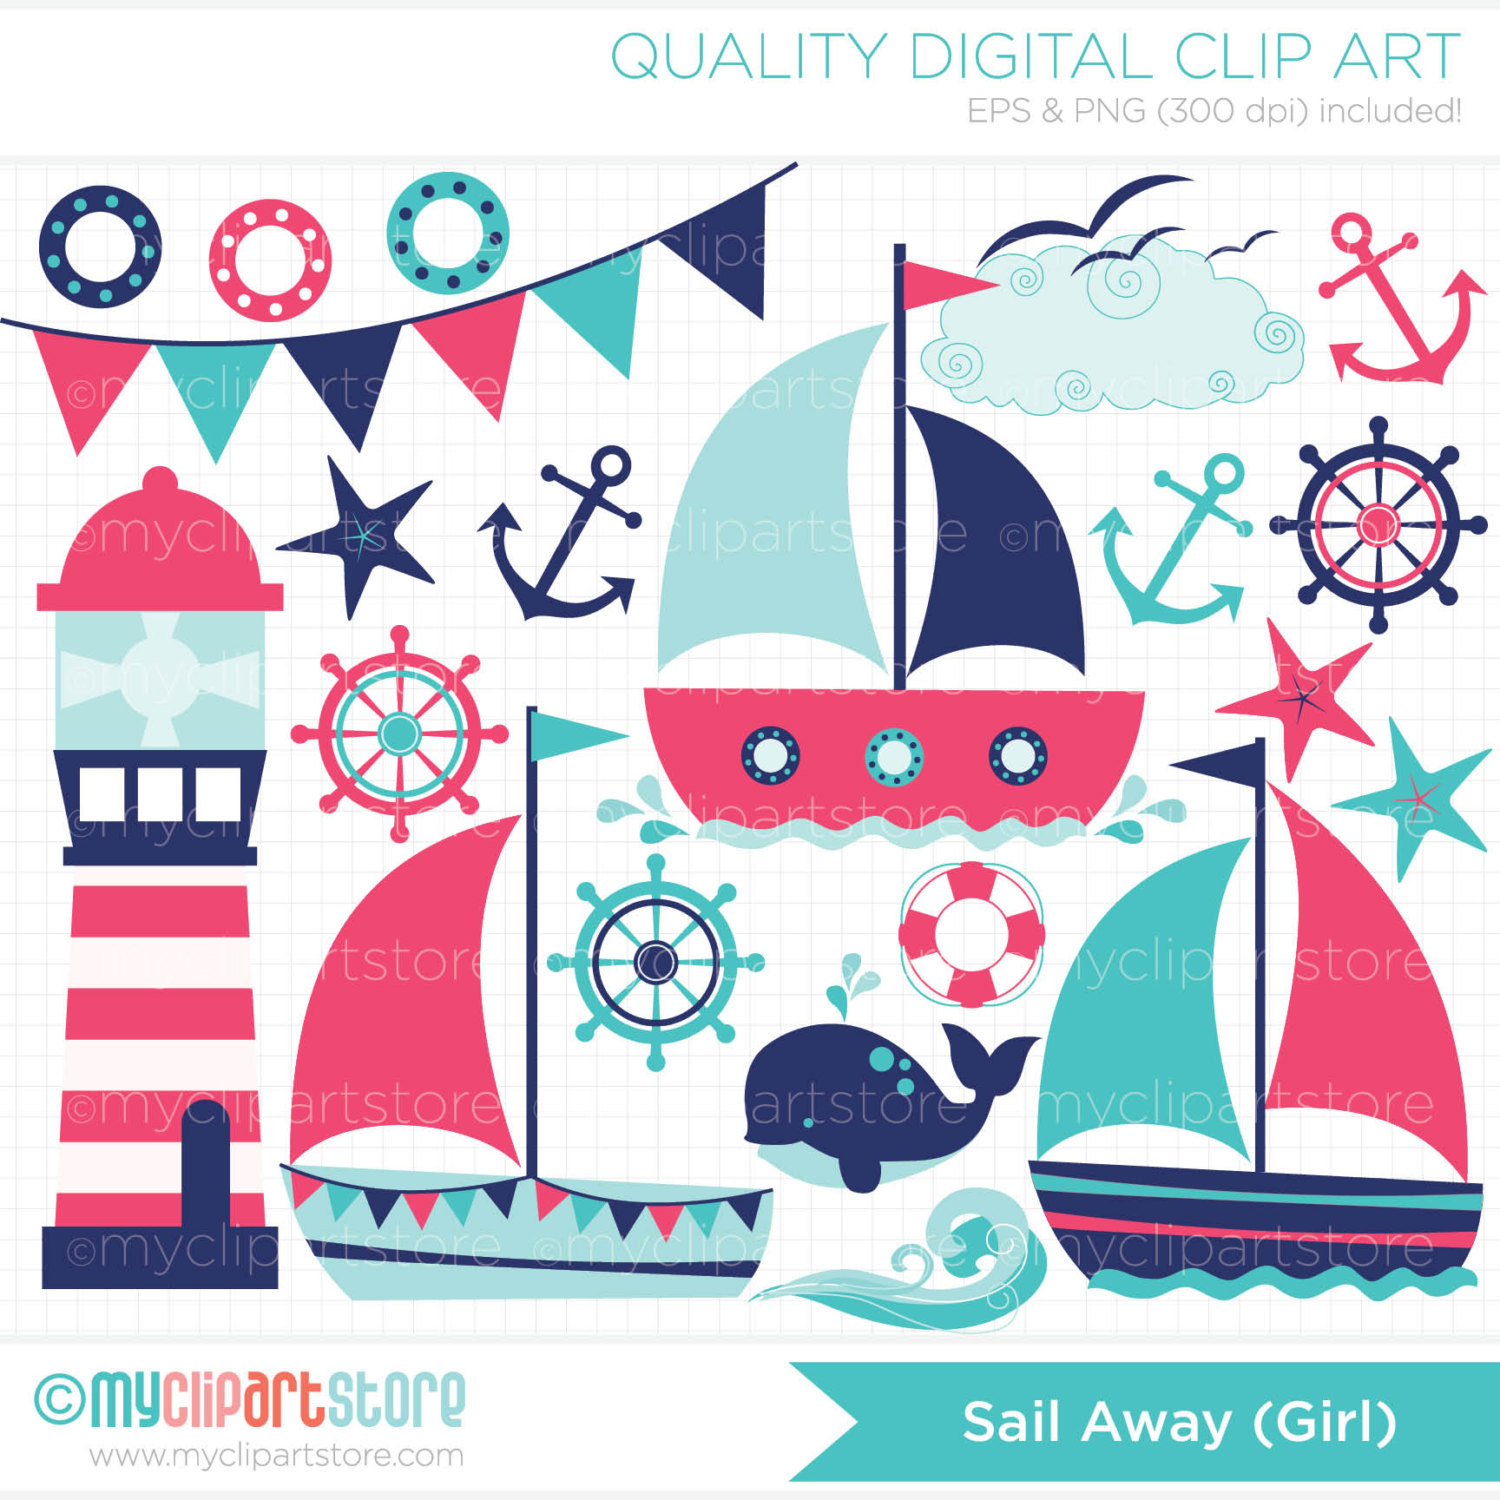 Clipart Sailing / Sail Away Girl Digital Clip by MyClipArtStore.